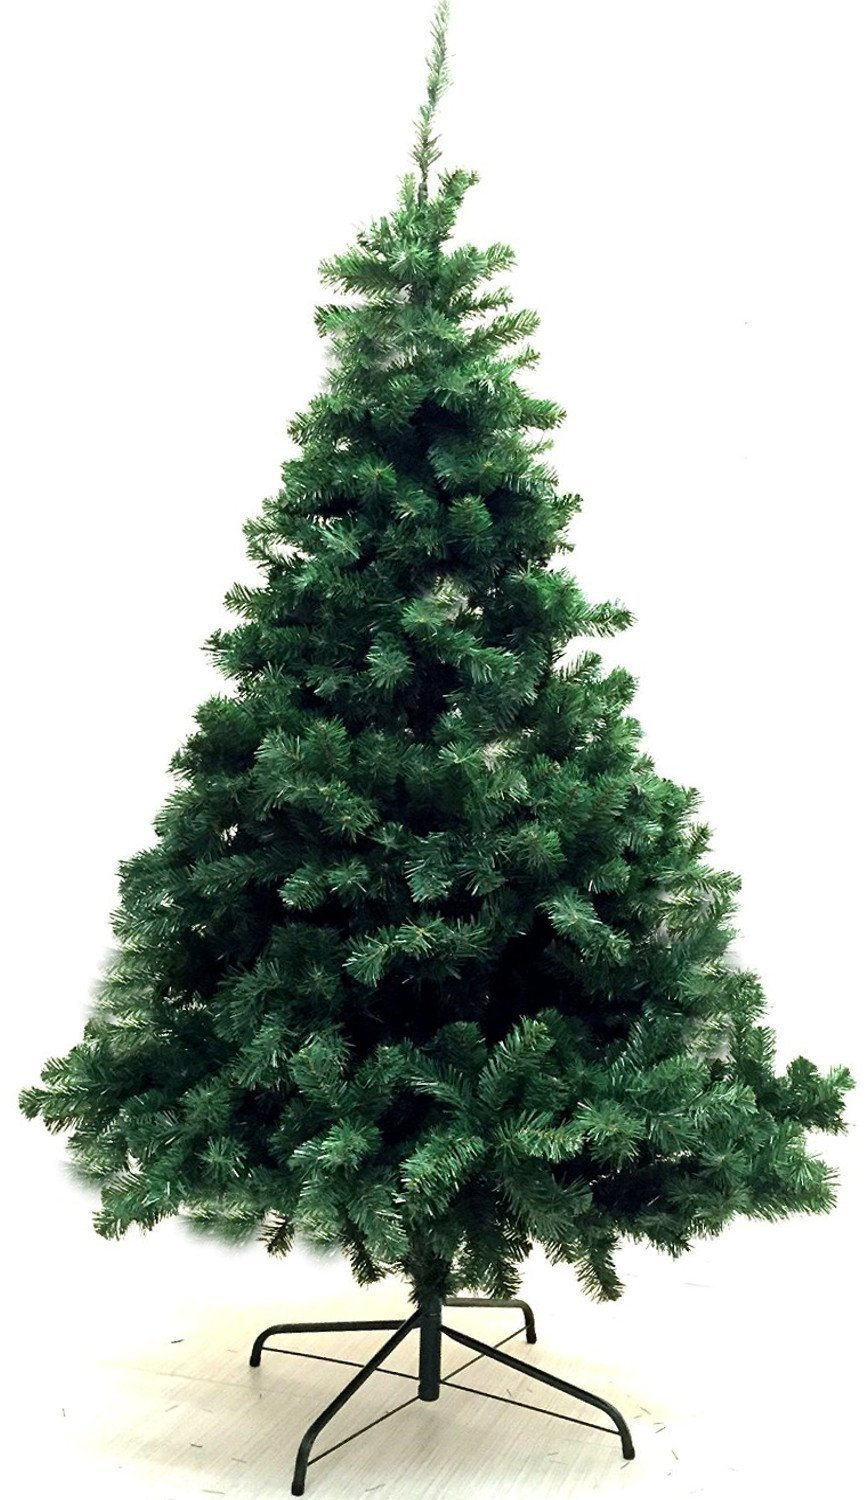 eco friendly 6 feet artificial charlie pine christmas tree with metal legs fullest